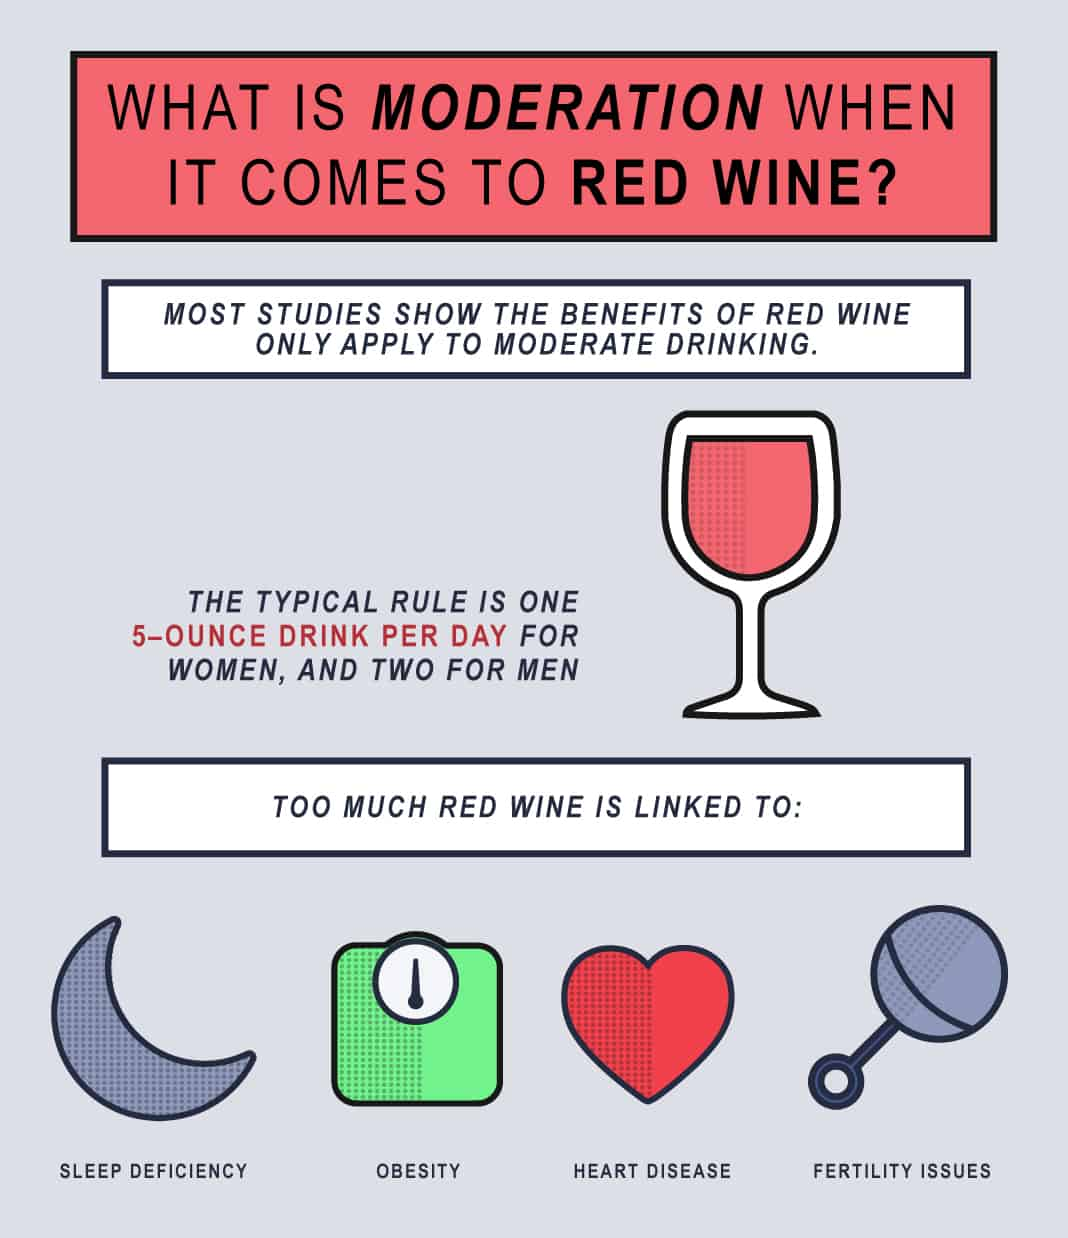 What is Moderation When it Comes to Red Wine?